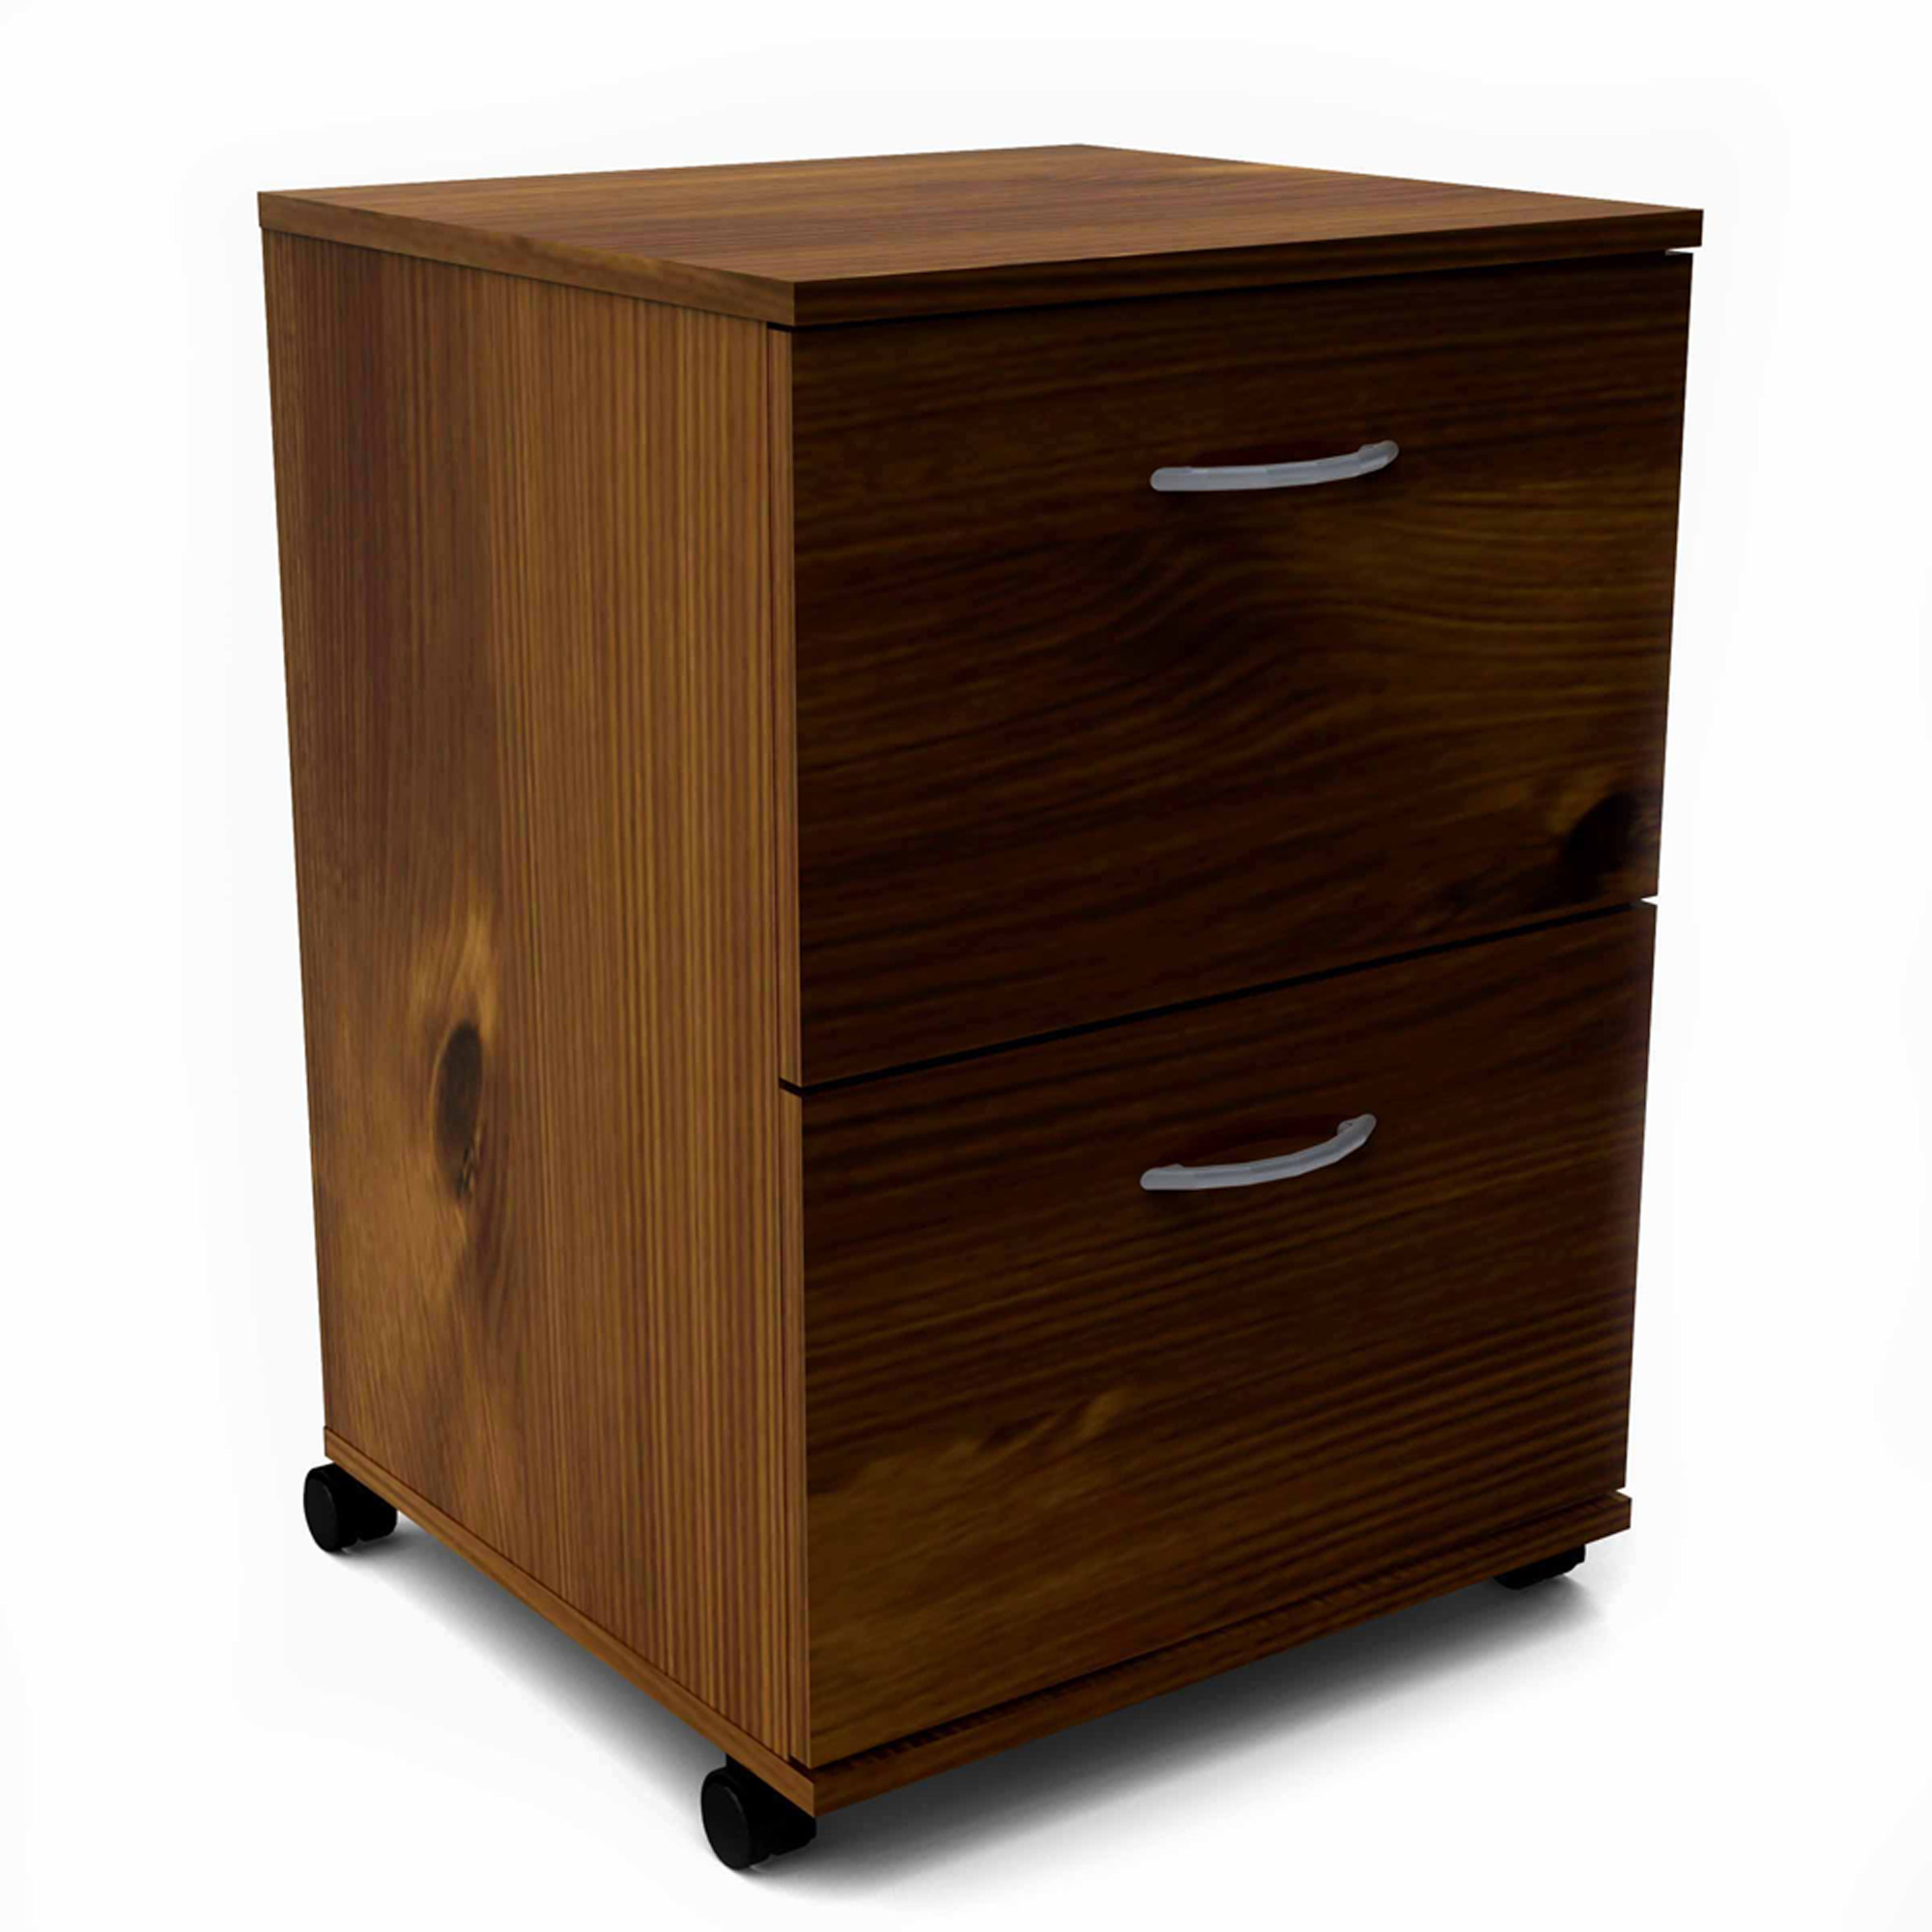 MFI / Nexera 2 Drawers Vertical Wood Composite Filing Cabinet, Multiple Finishes available